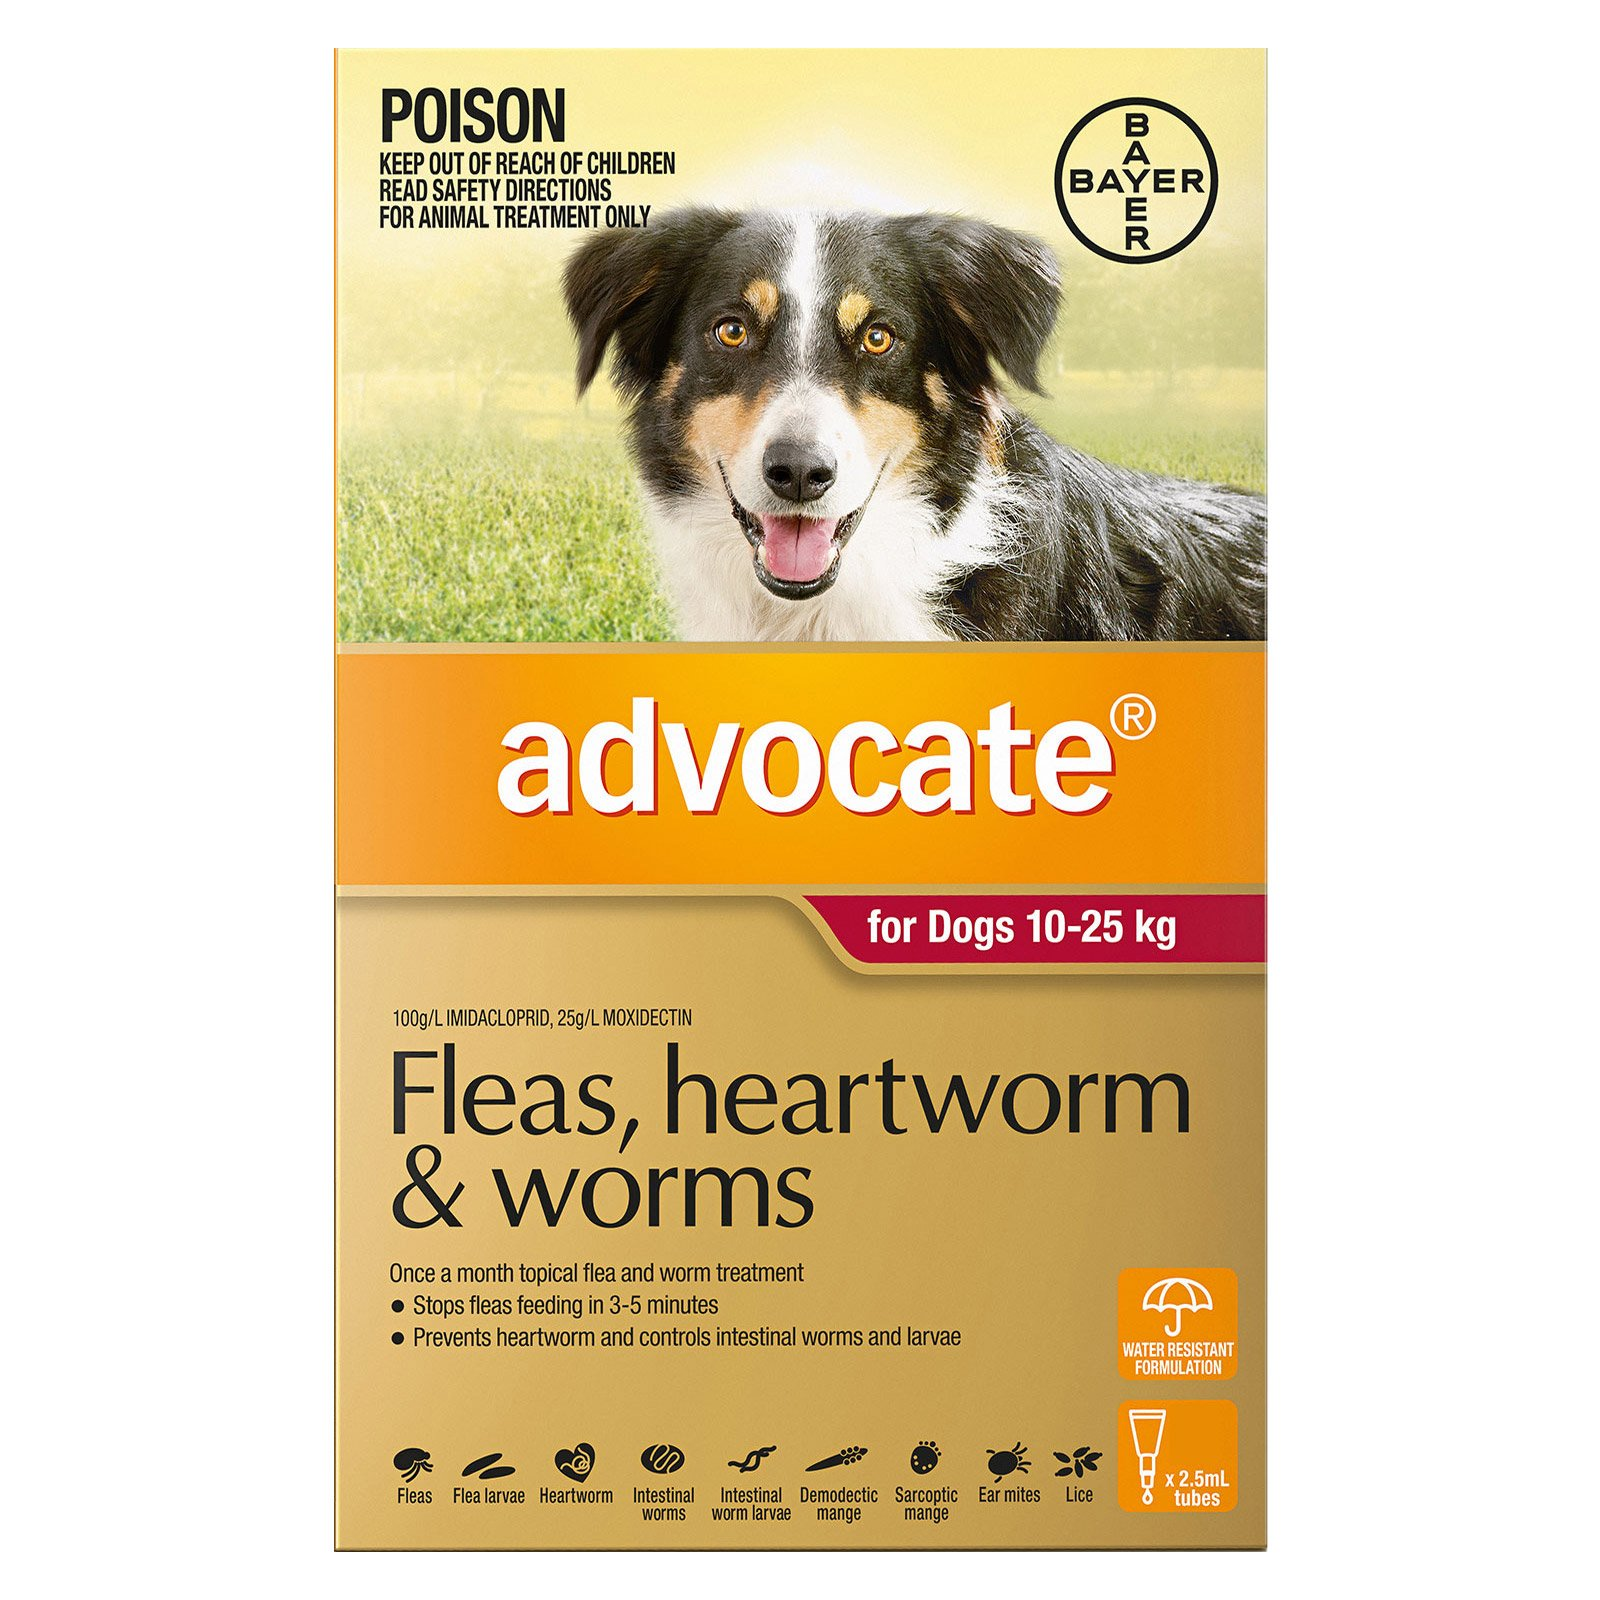 Advocate for Dogs 10 to 25 Kg (Large Dogs) Red